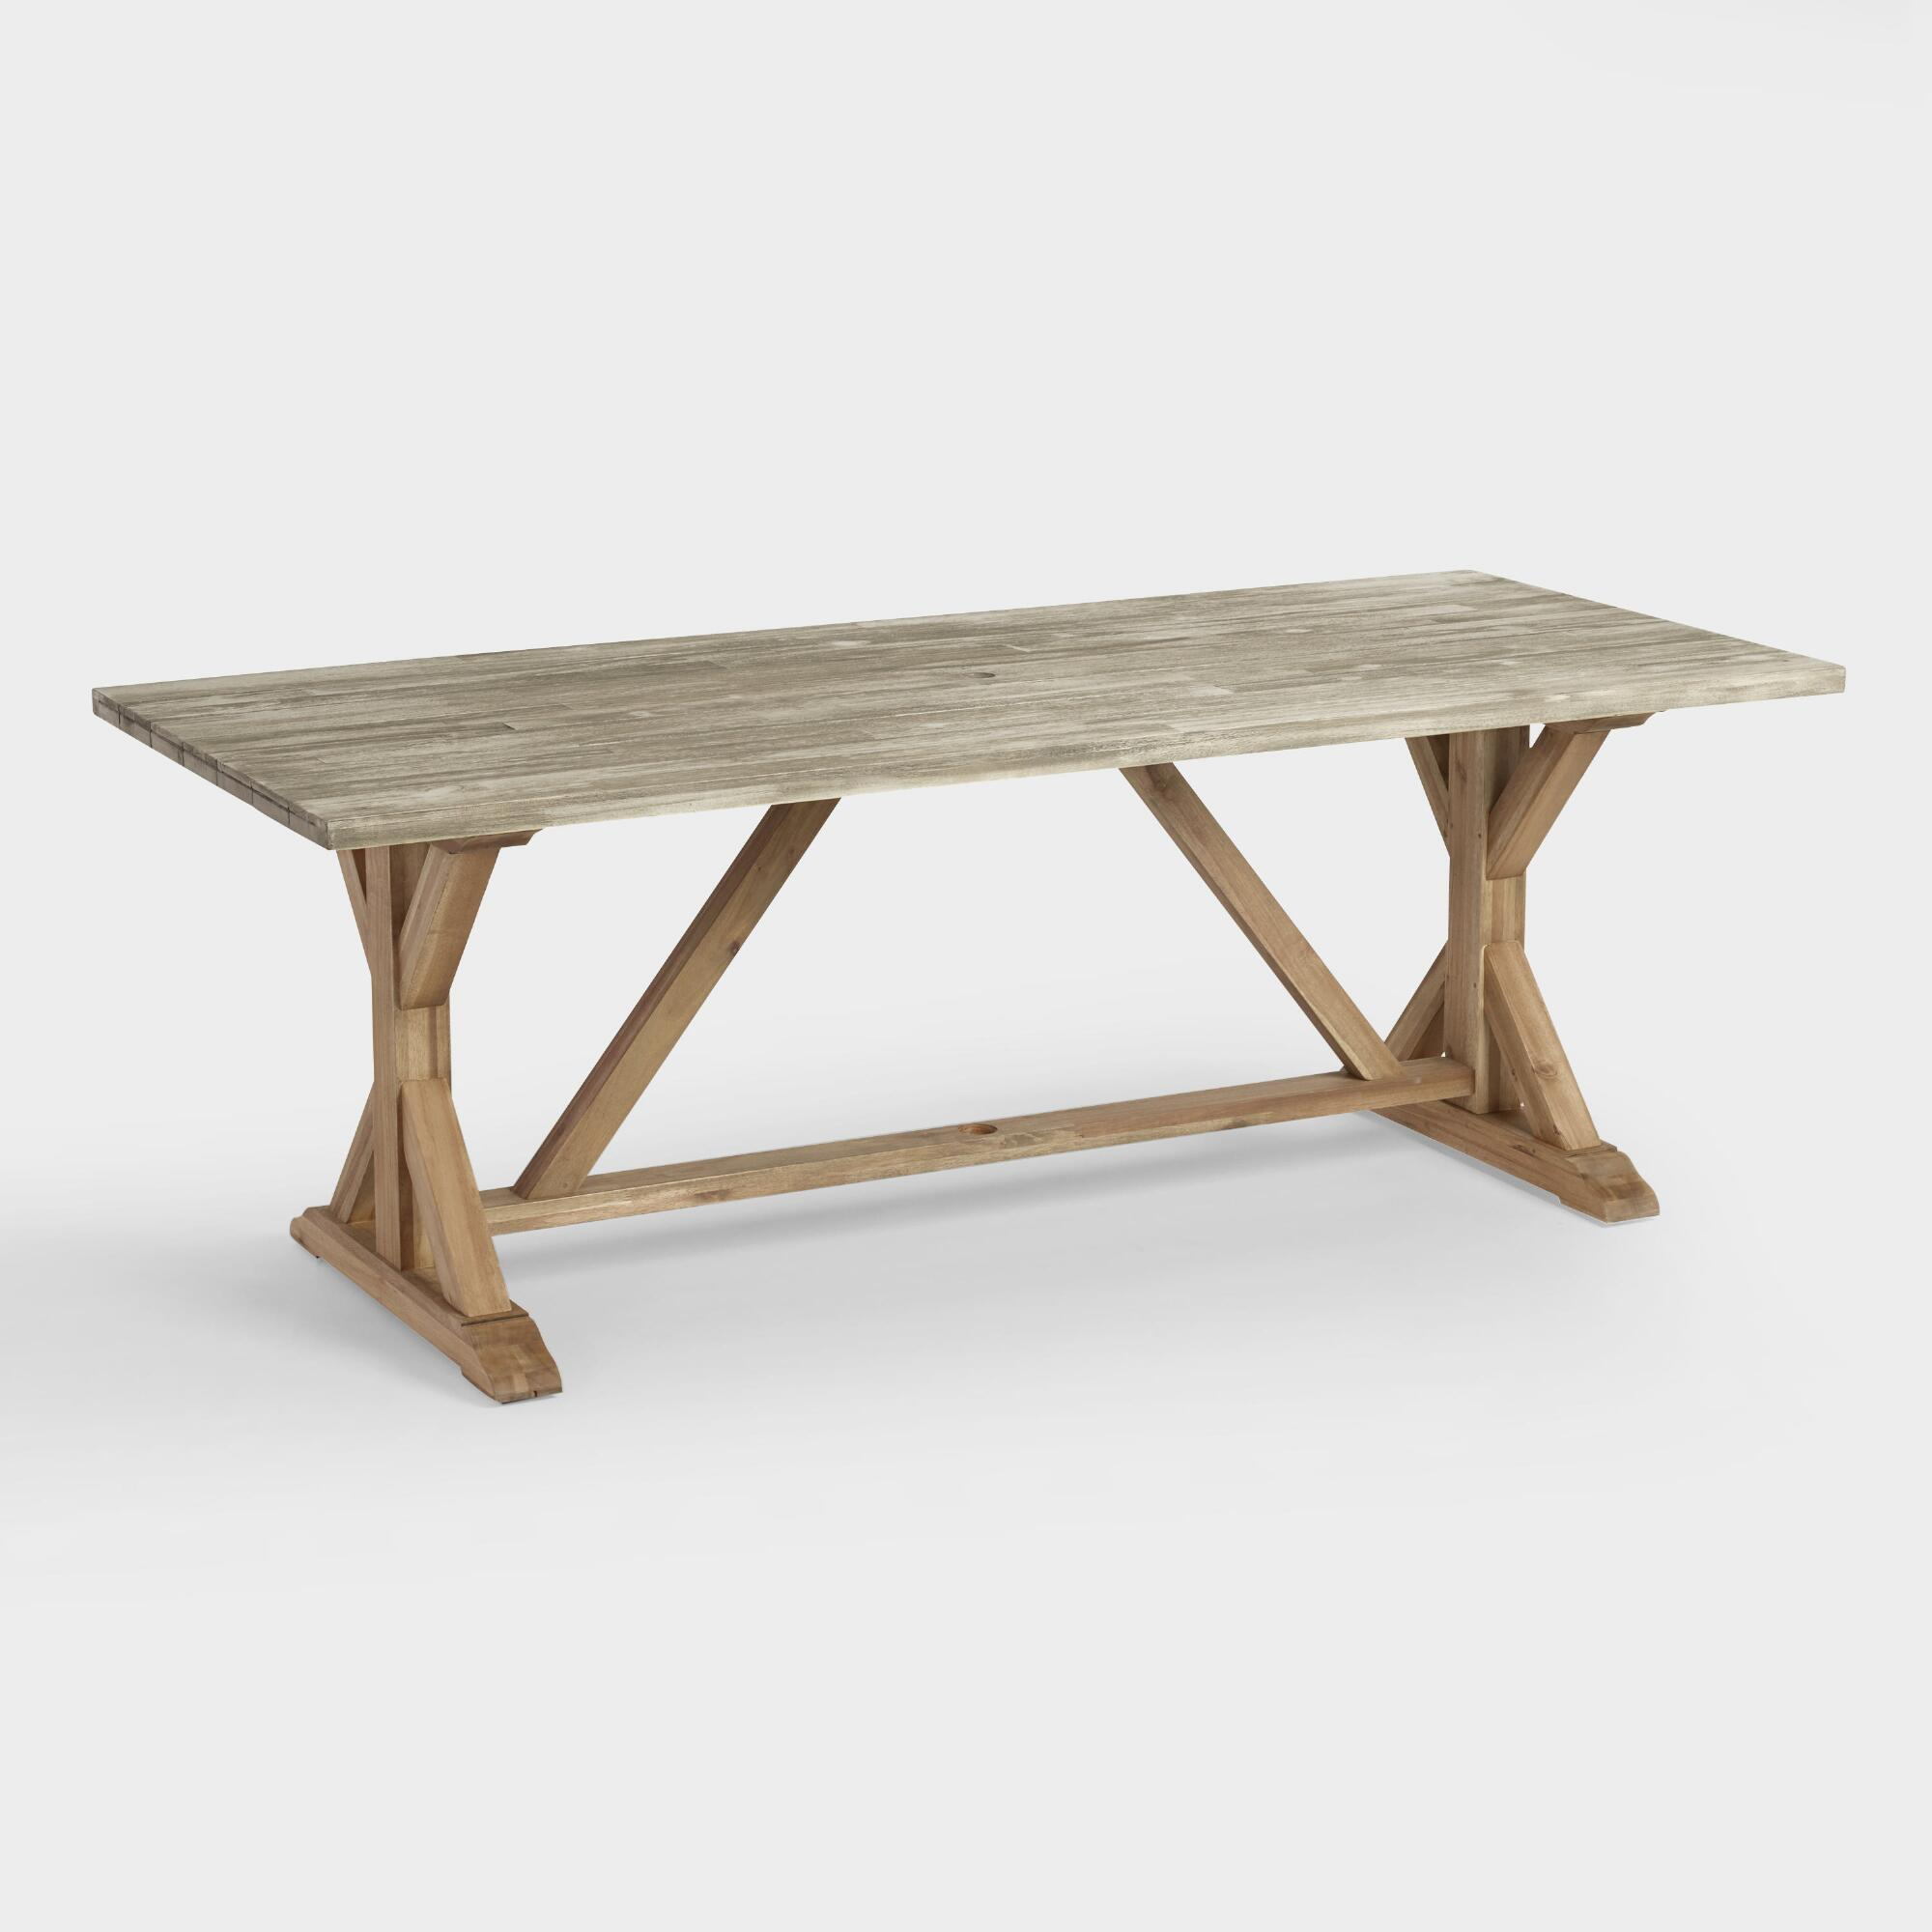 Two Tone Wood San Remo Outdoor Patio Trestle Dining Table  : Two Tone Wood San Remo Outdoor Patio Trestle Dining Table Gray by World Market from homebop.com size 2000 x 2000 jpeg 144kB